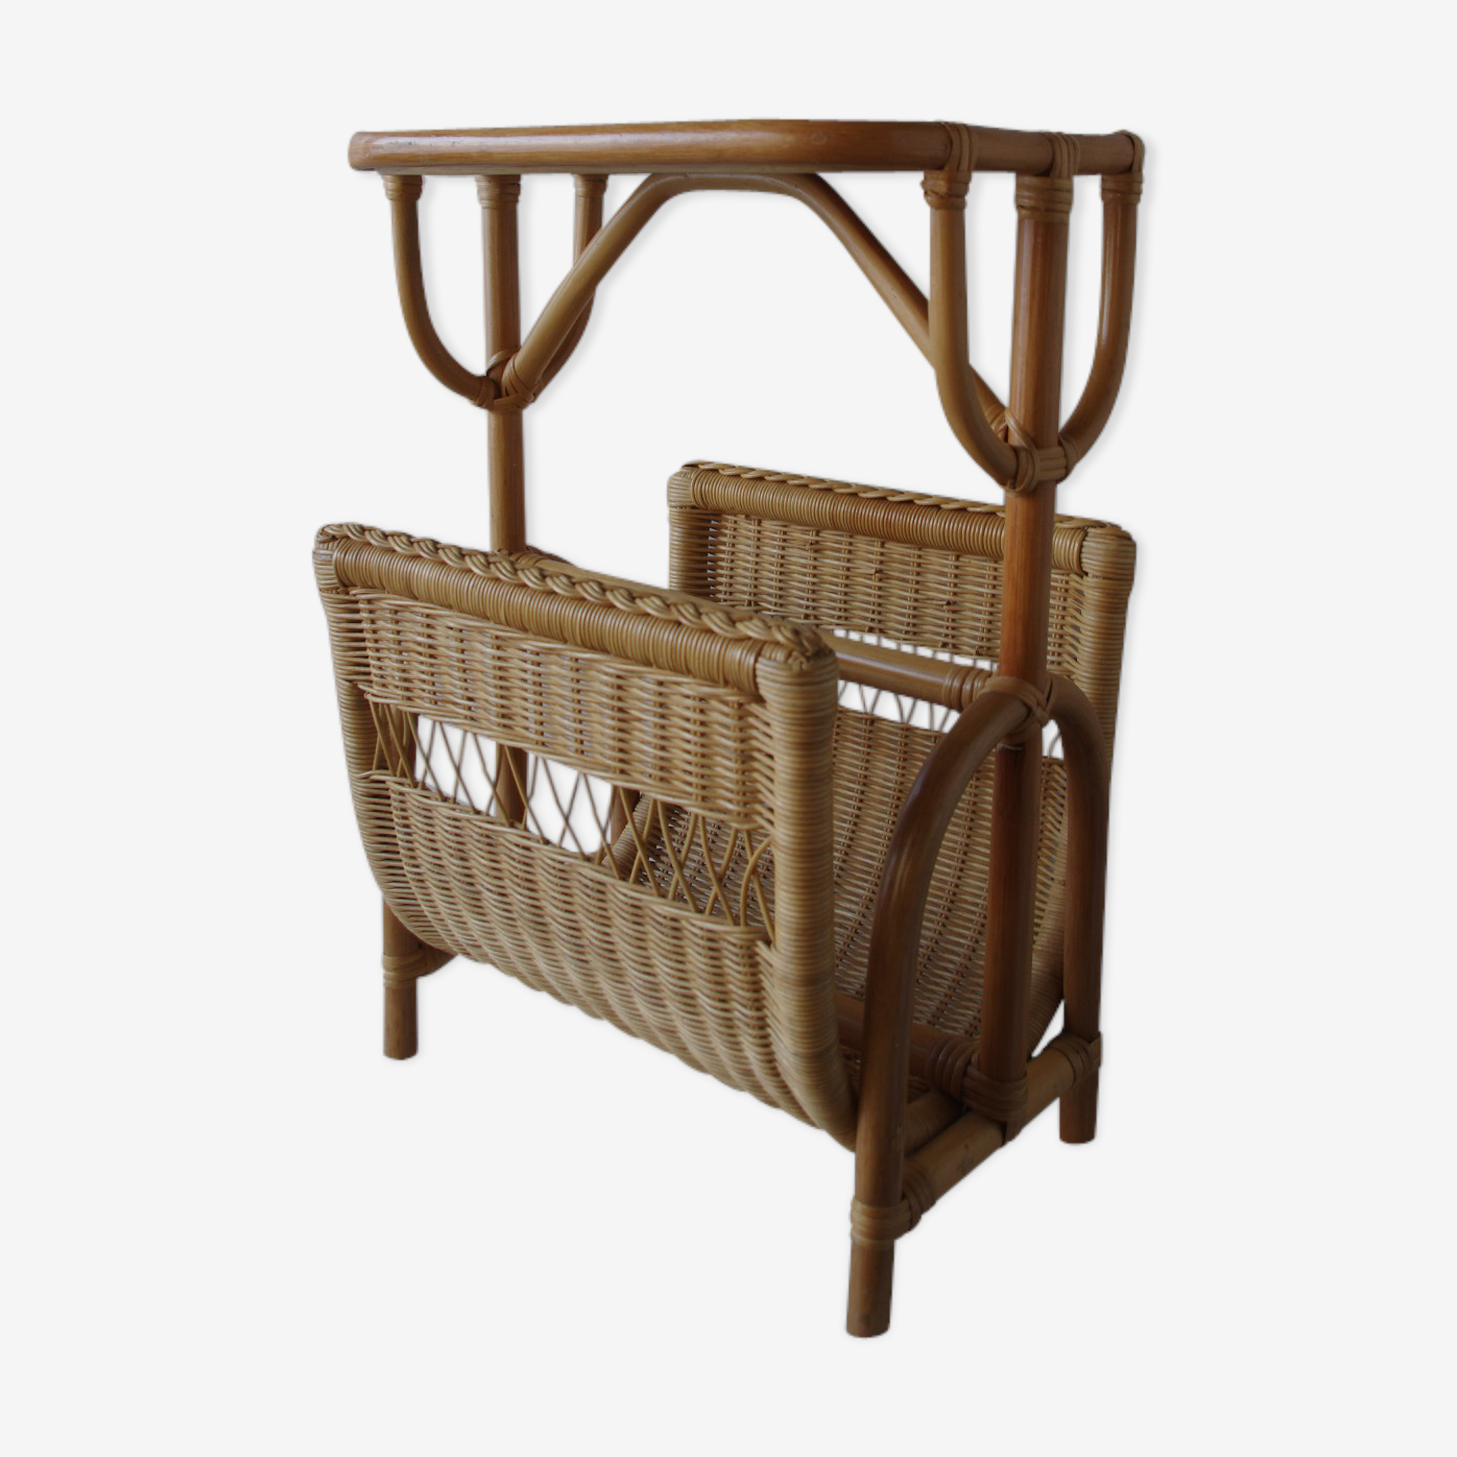 Wicker Magazine Rack, 1970s